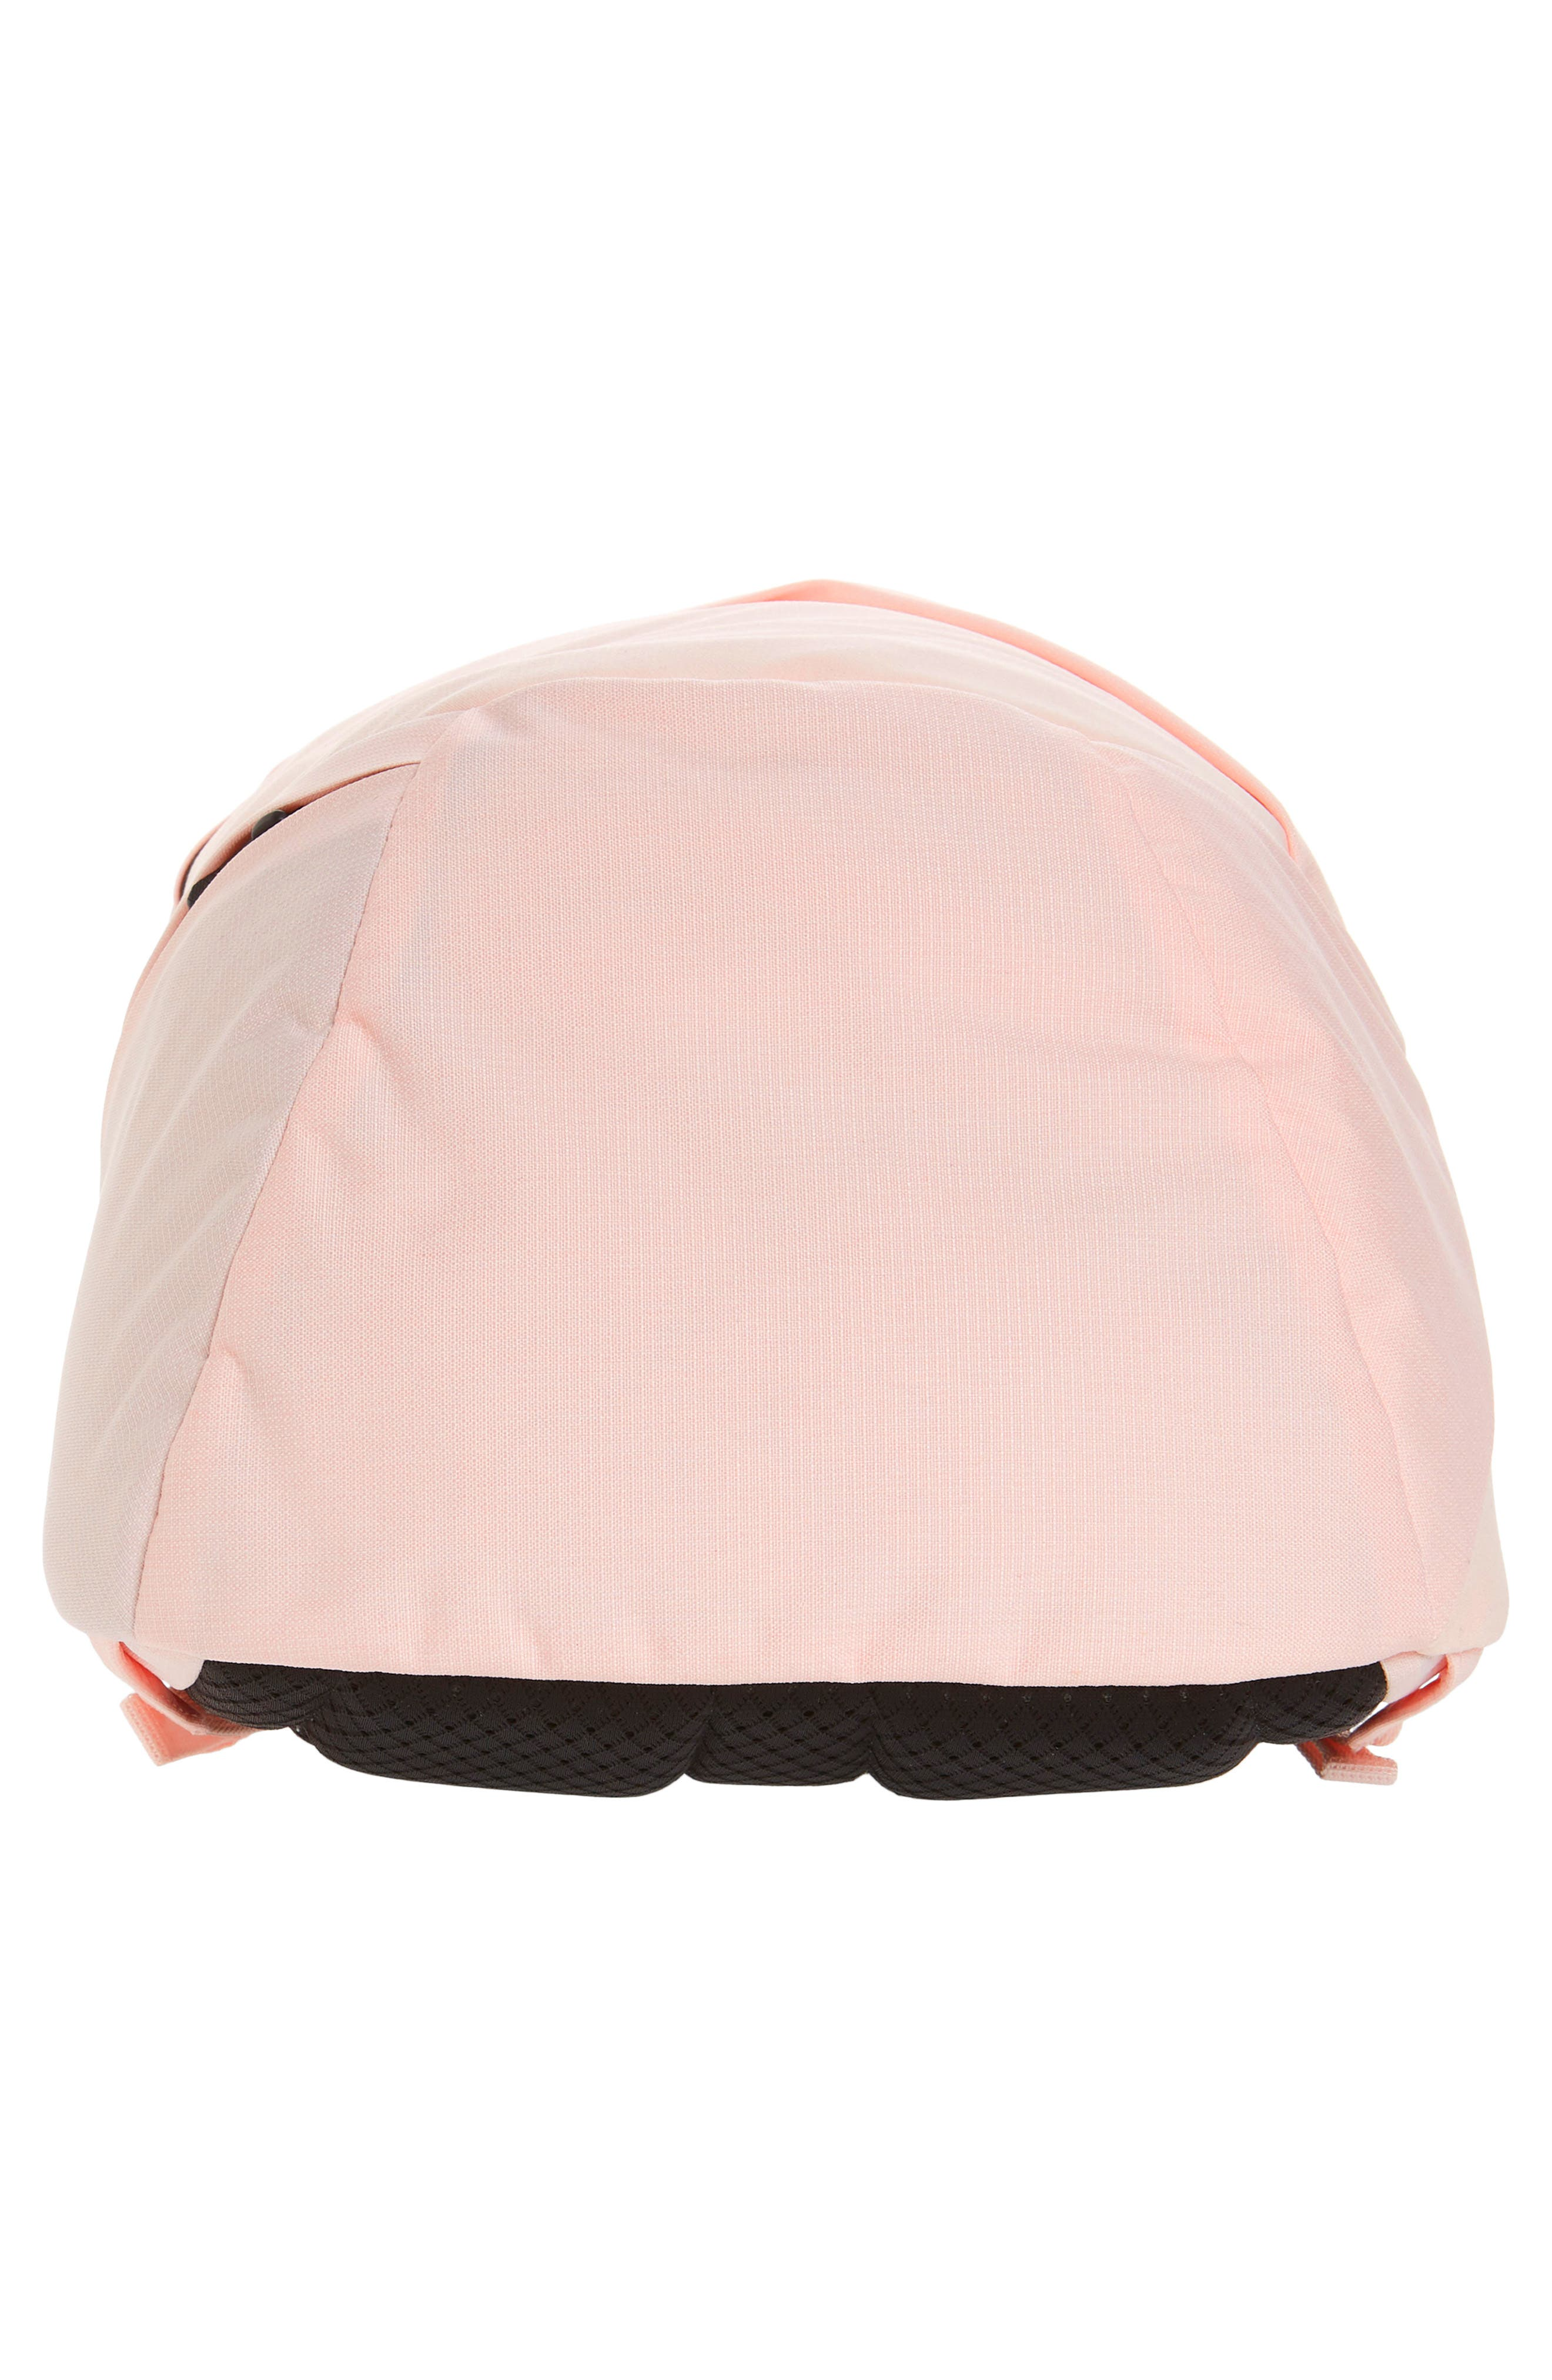 THE NORTH FACE, 'Isabella' Backpack, Alternate thumbnail 7, color, PINK LIGHT HEATHER/ TNF BLACK